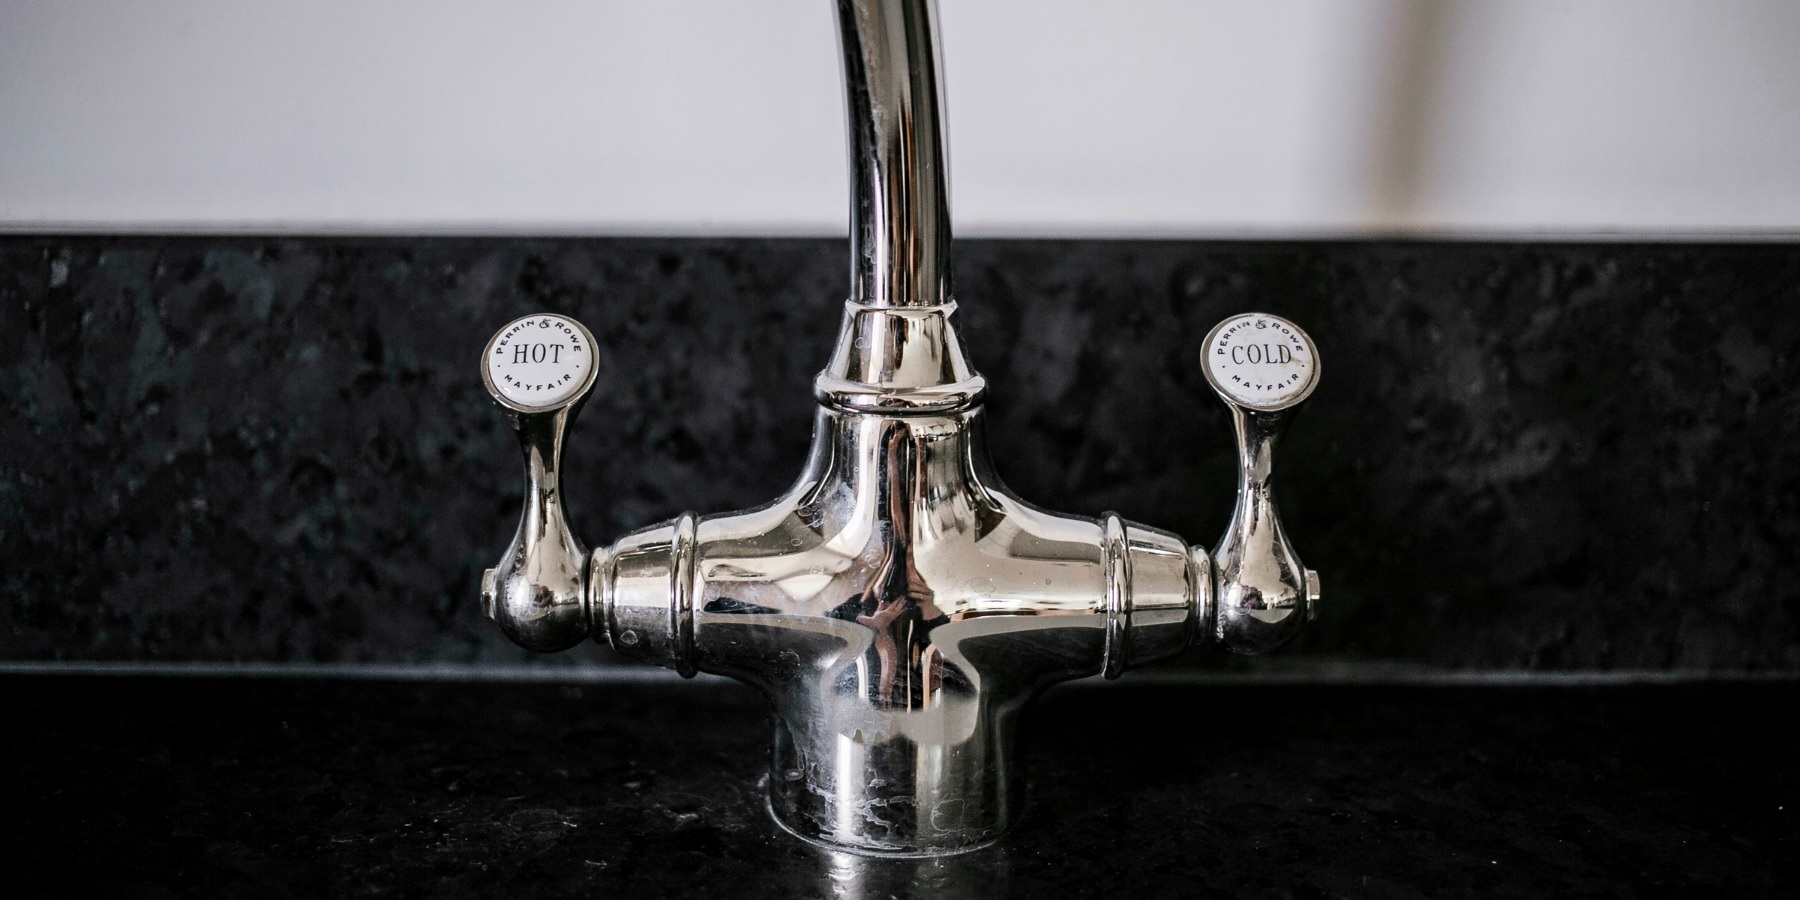 Burlanes Interiors - Hurst kitchen sink and tap